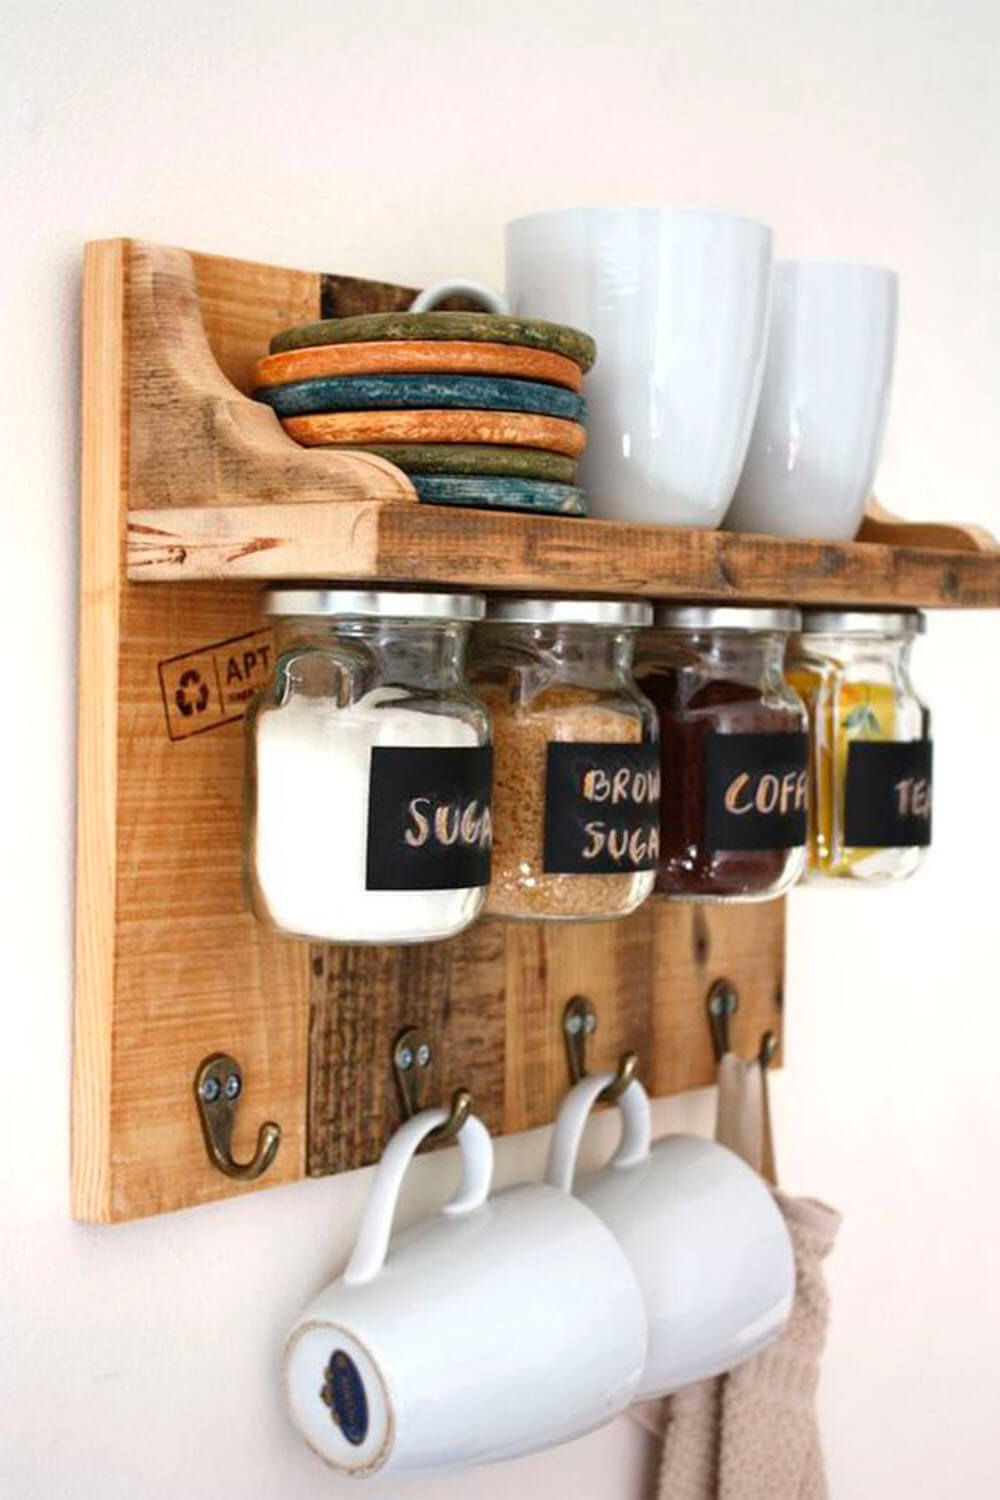 Wall Mug Rack Holder Reclaimed Wood Pallet Wood Storage Shelf Rustic Hooks Kitchen Dining Bar Kitchen Storage Organization